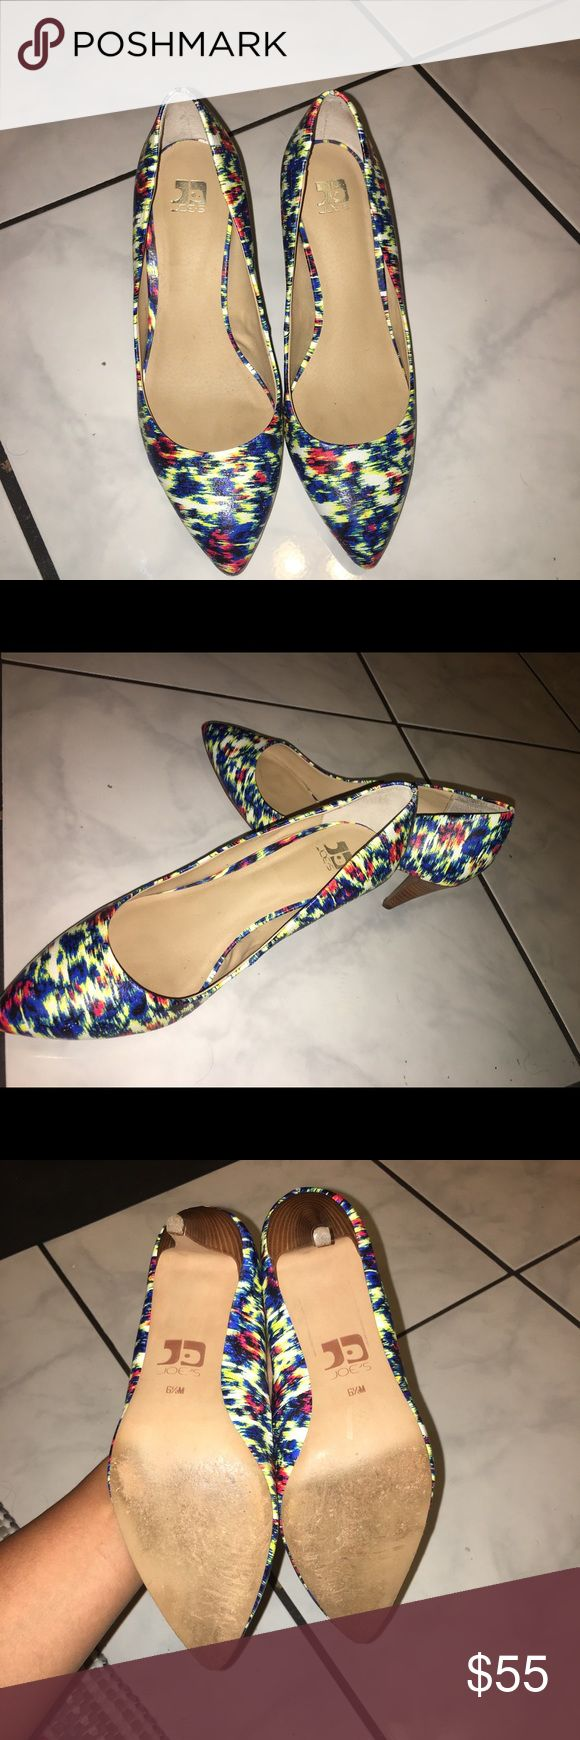 """Joe's Multi Color Pumps Joe's multi-colored, geometric print, approx 3"""" heel, pump, gently worn once, normal wear on soles, very good condition, size 6 1/2M, without box. Joe's Jeans Shoes Heels"""